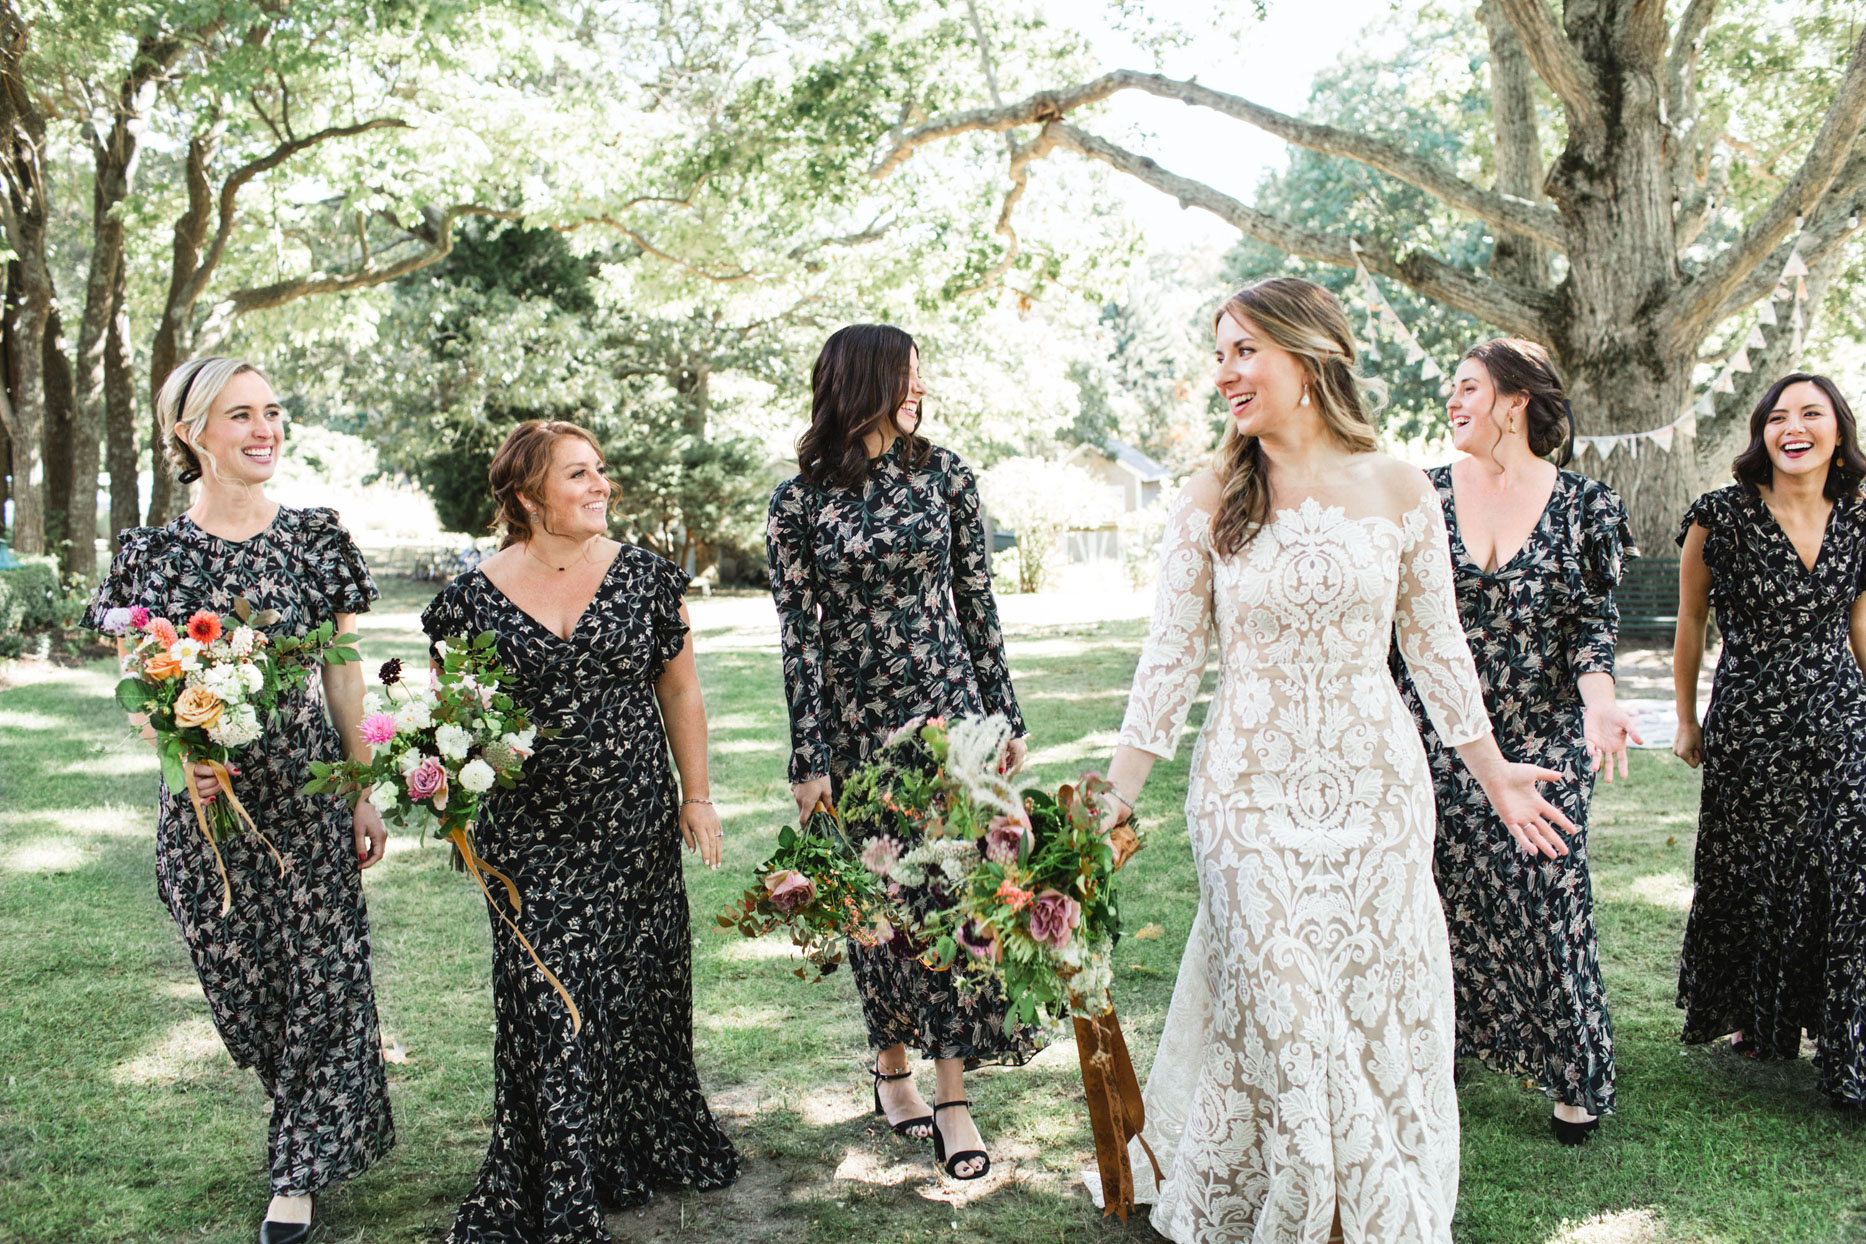 bride and bridesmaids walking in floral dresses